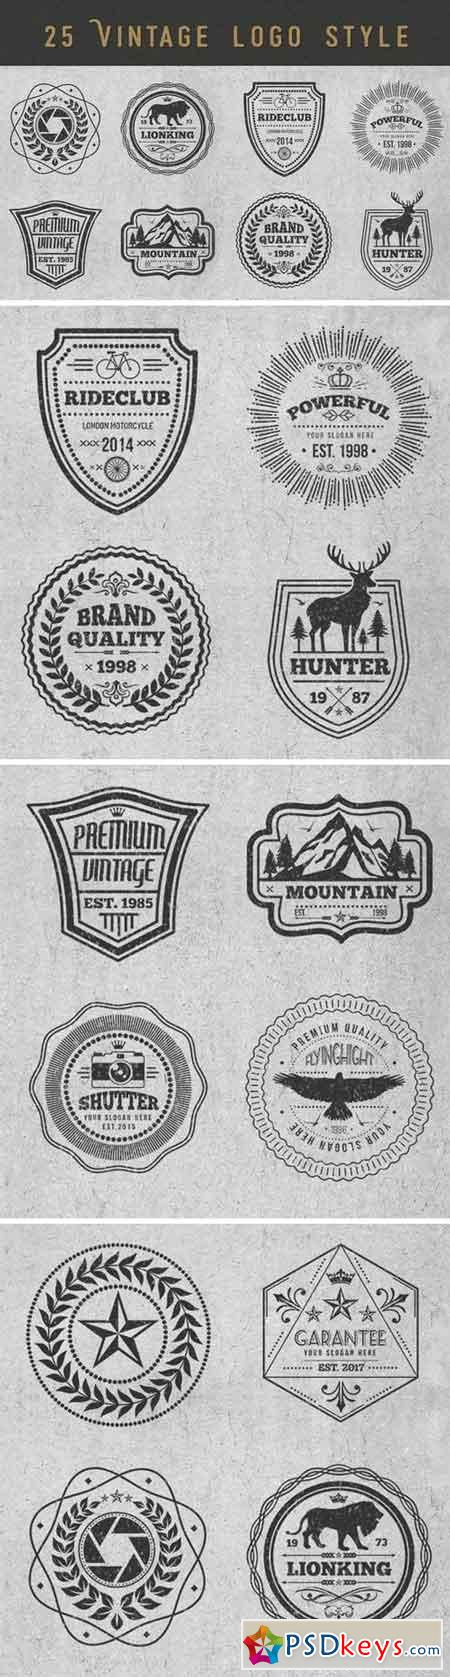 Logos and Badges Vintage Style